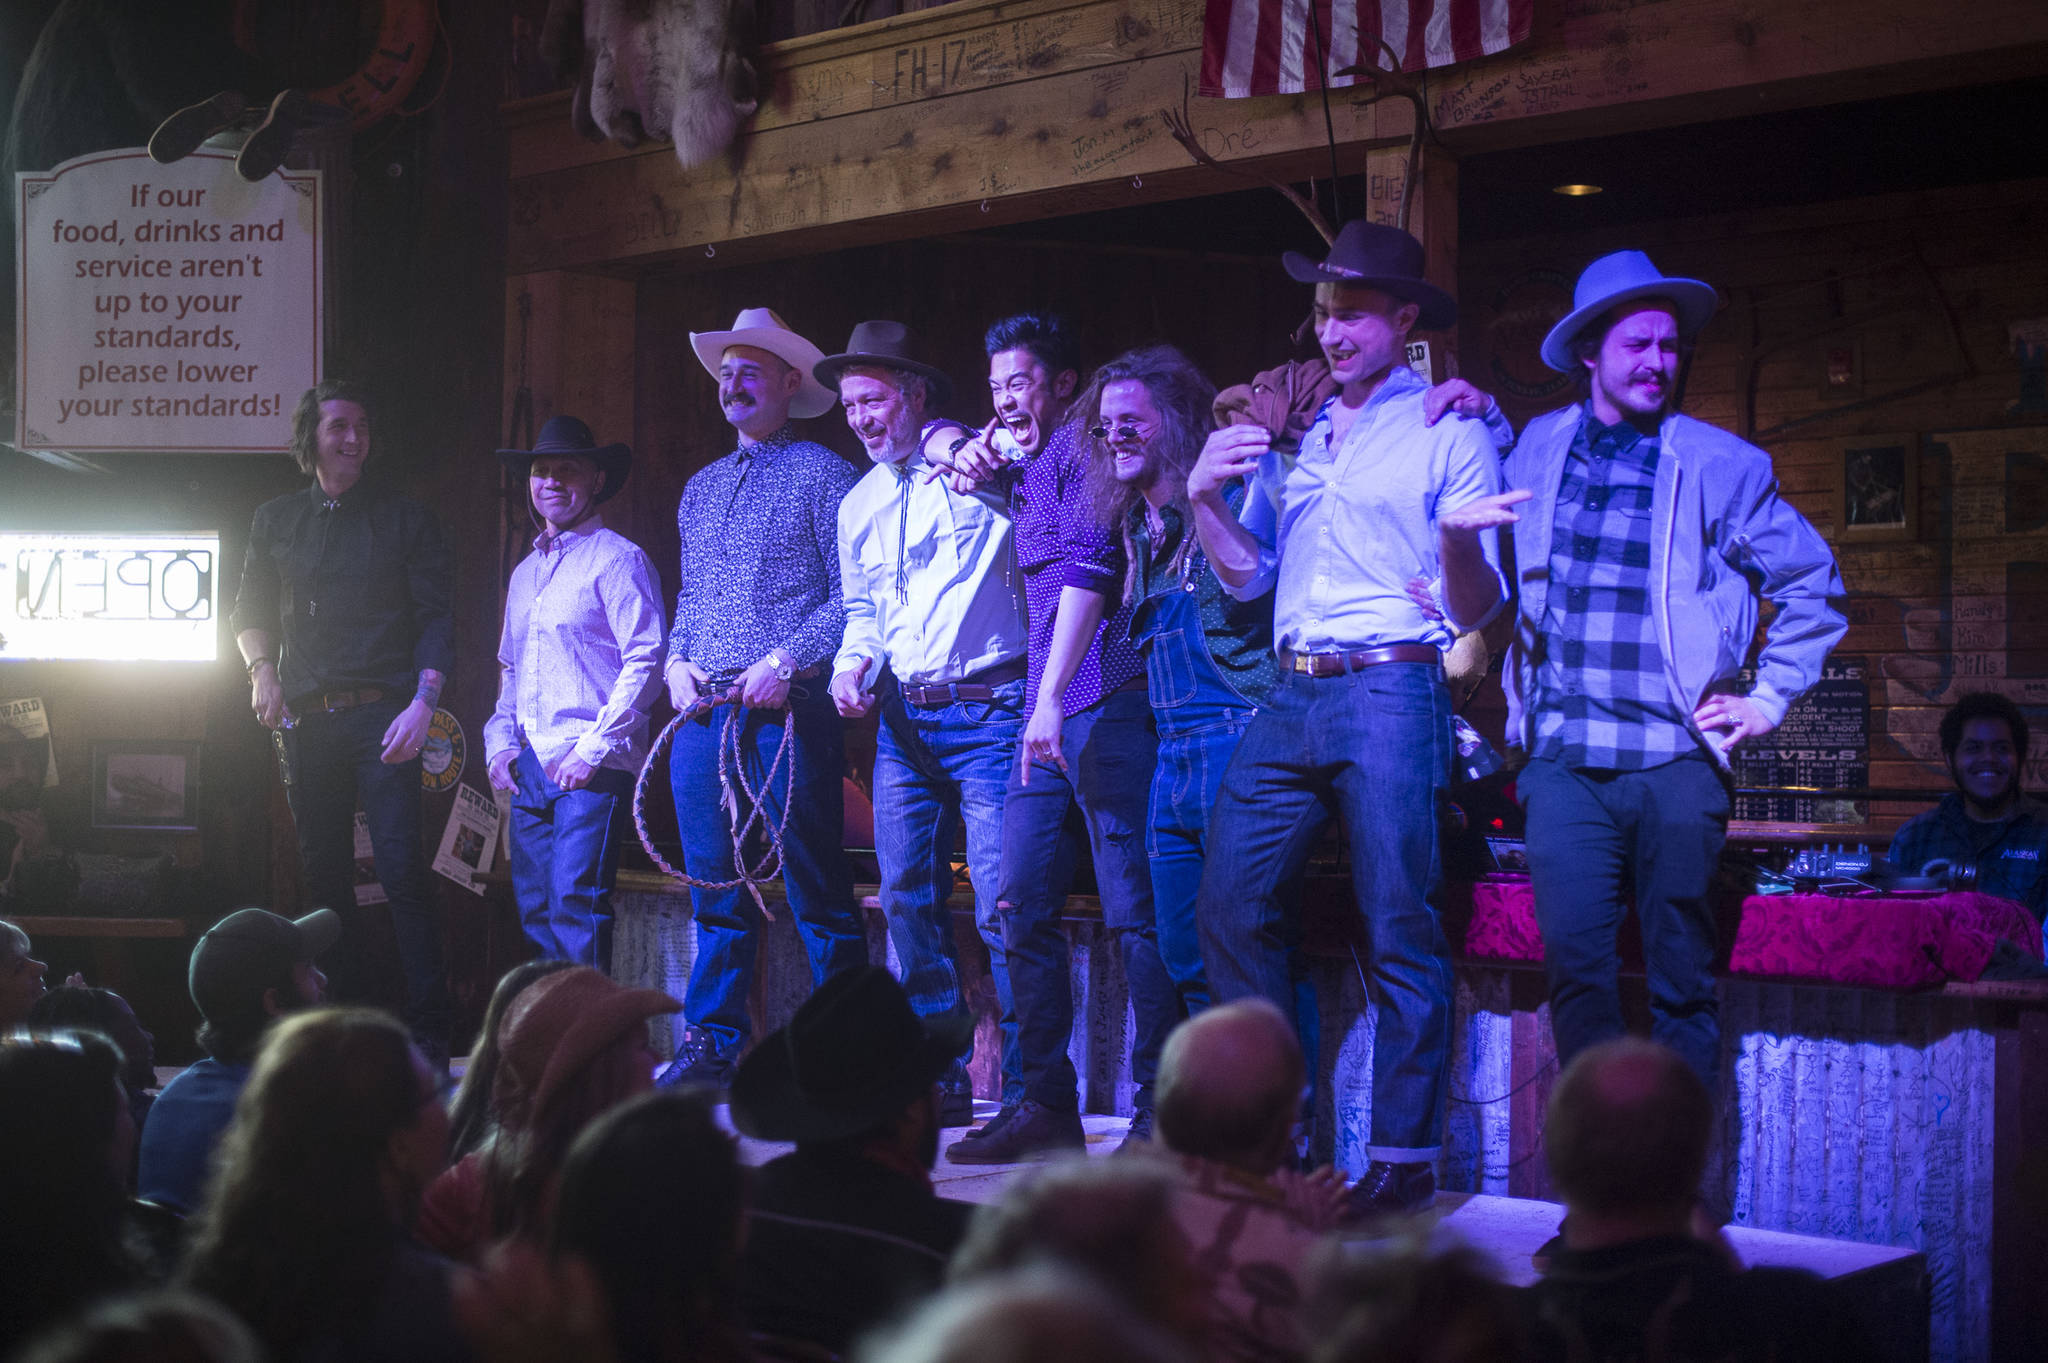 Men's clothing from 4th Coast Outfitters is modeled on stage during the Juneau Rotaract's Wild West Roundup Fashion Show at the Red Dog Saloon on Saturday, April 27, 2019. (Michael Penn | Juneau Empire)